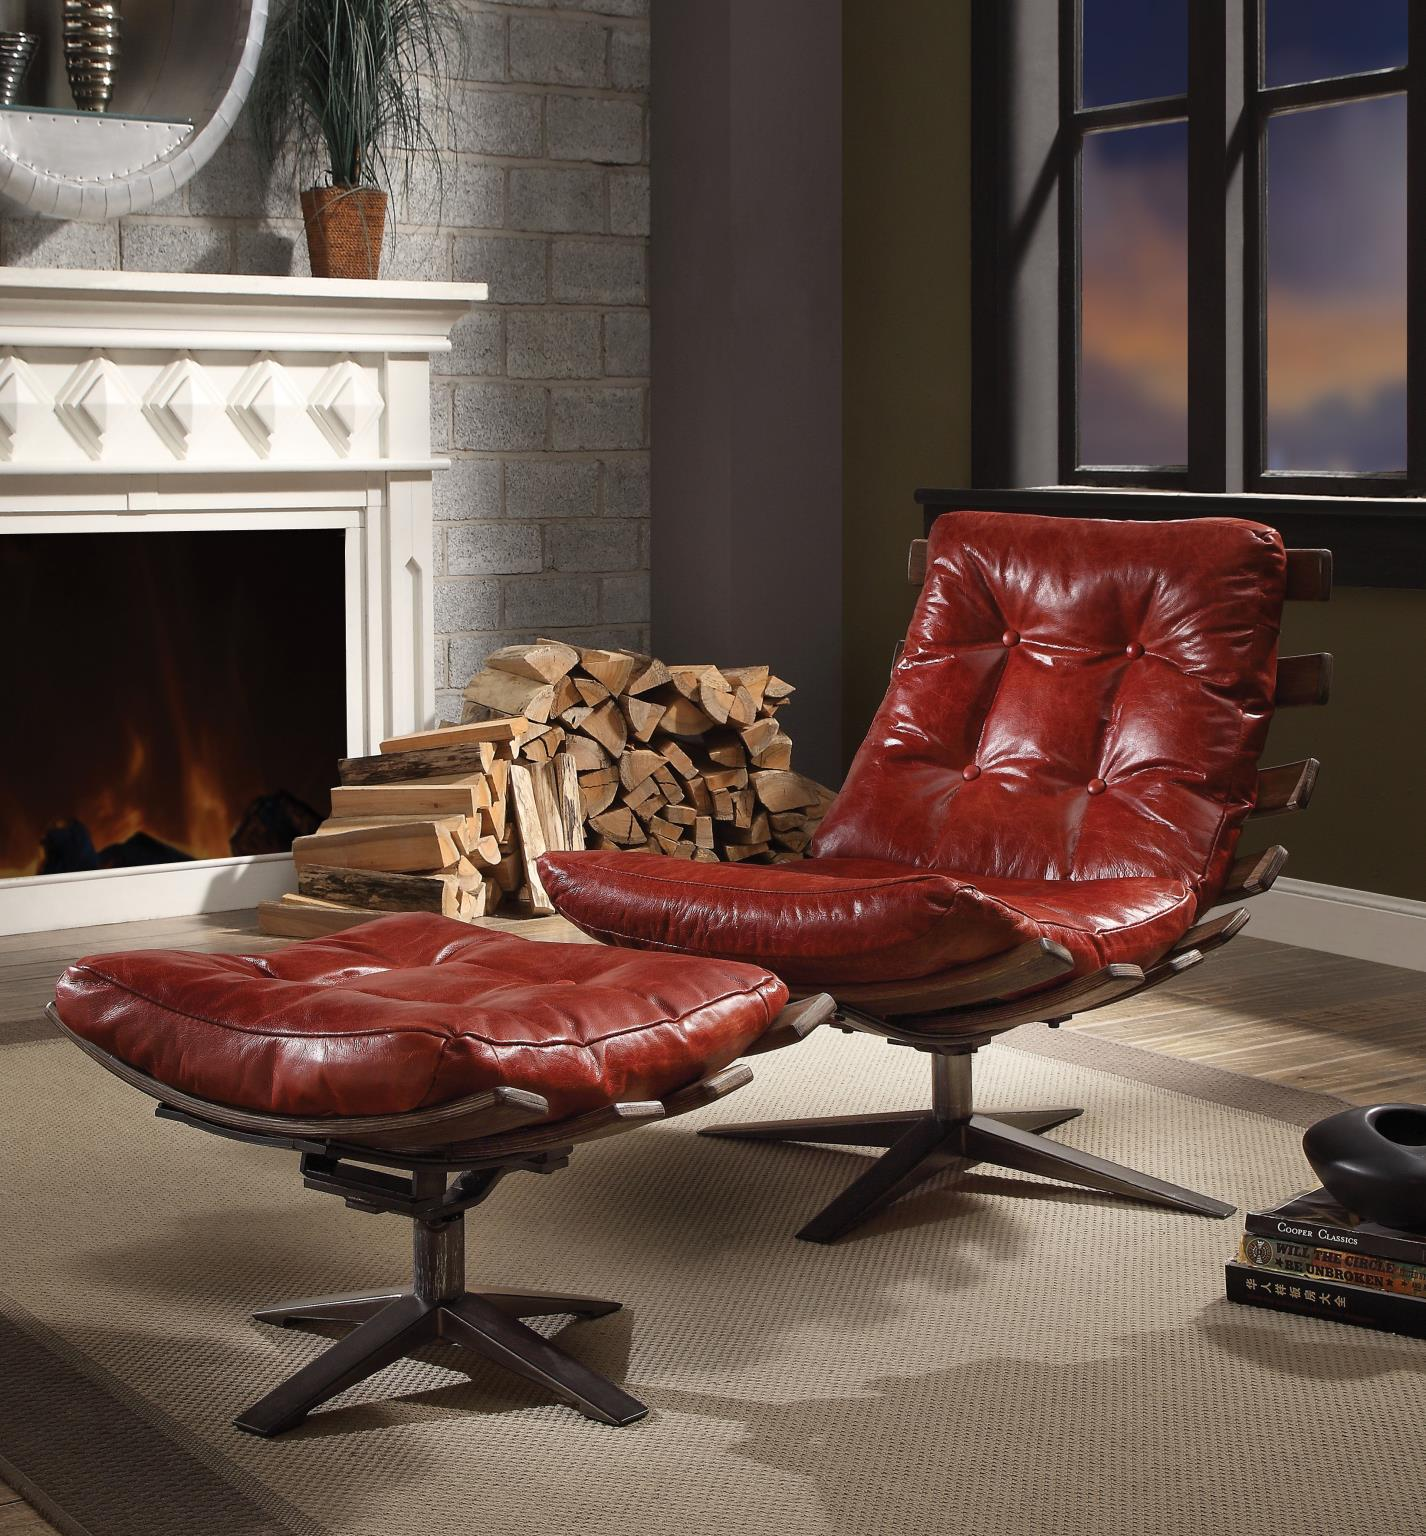 Antique Red Swivel Chair and Ottoman